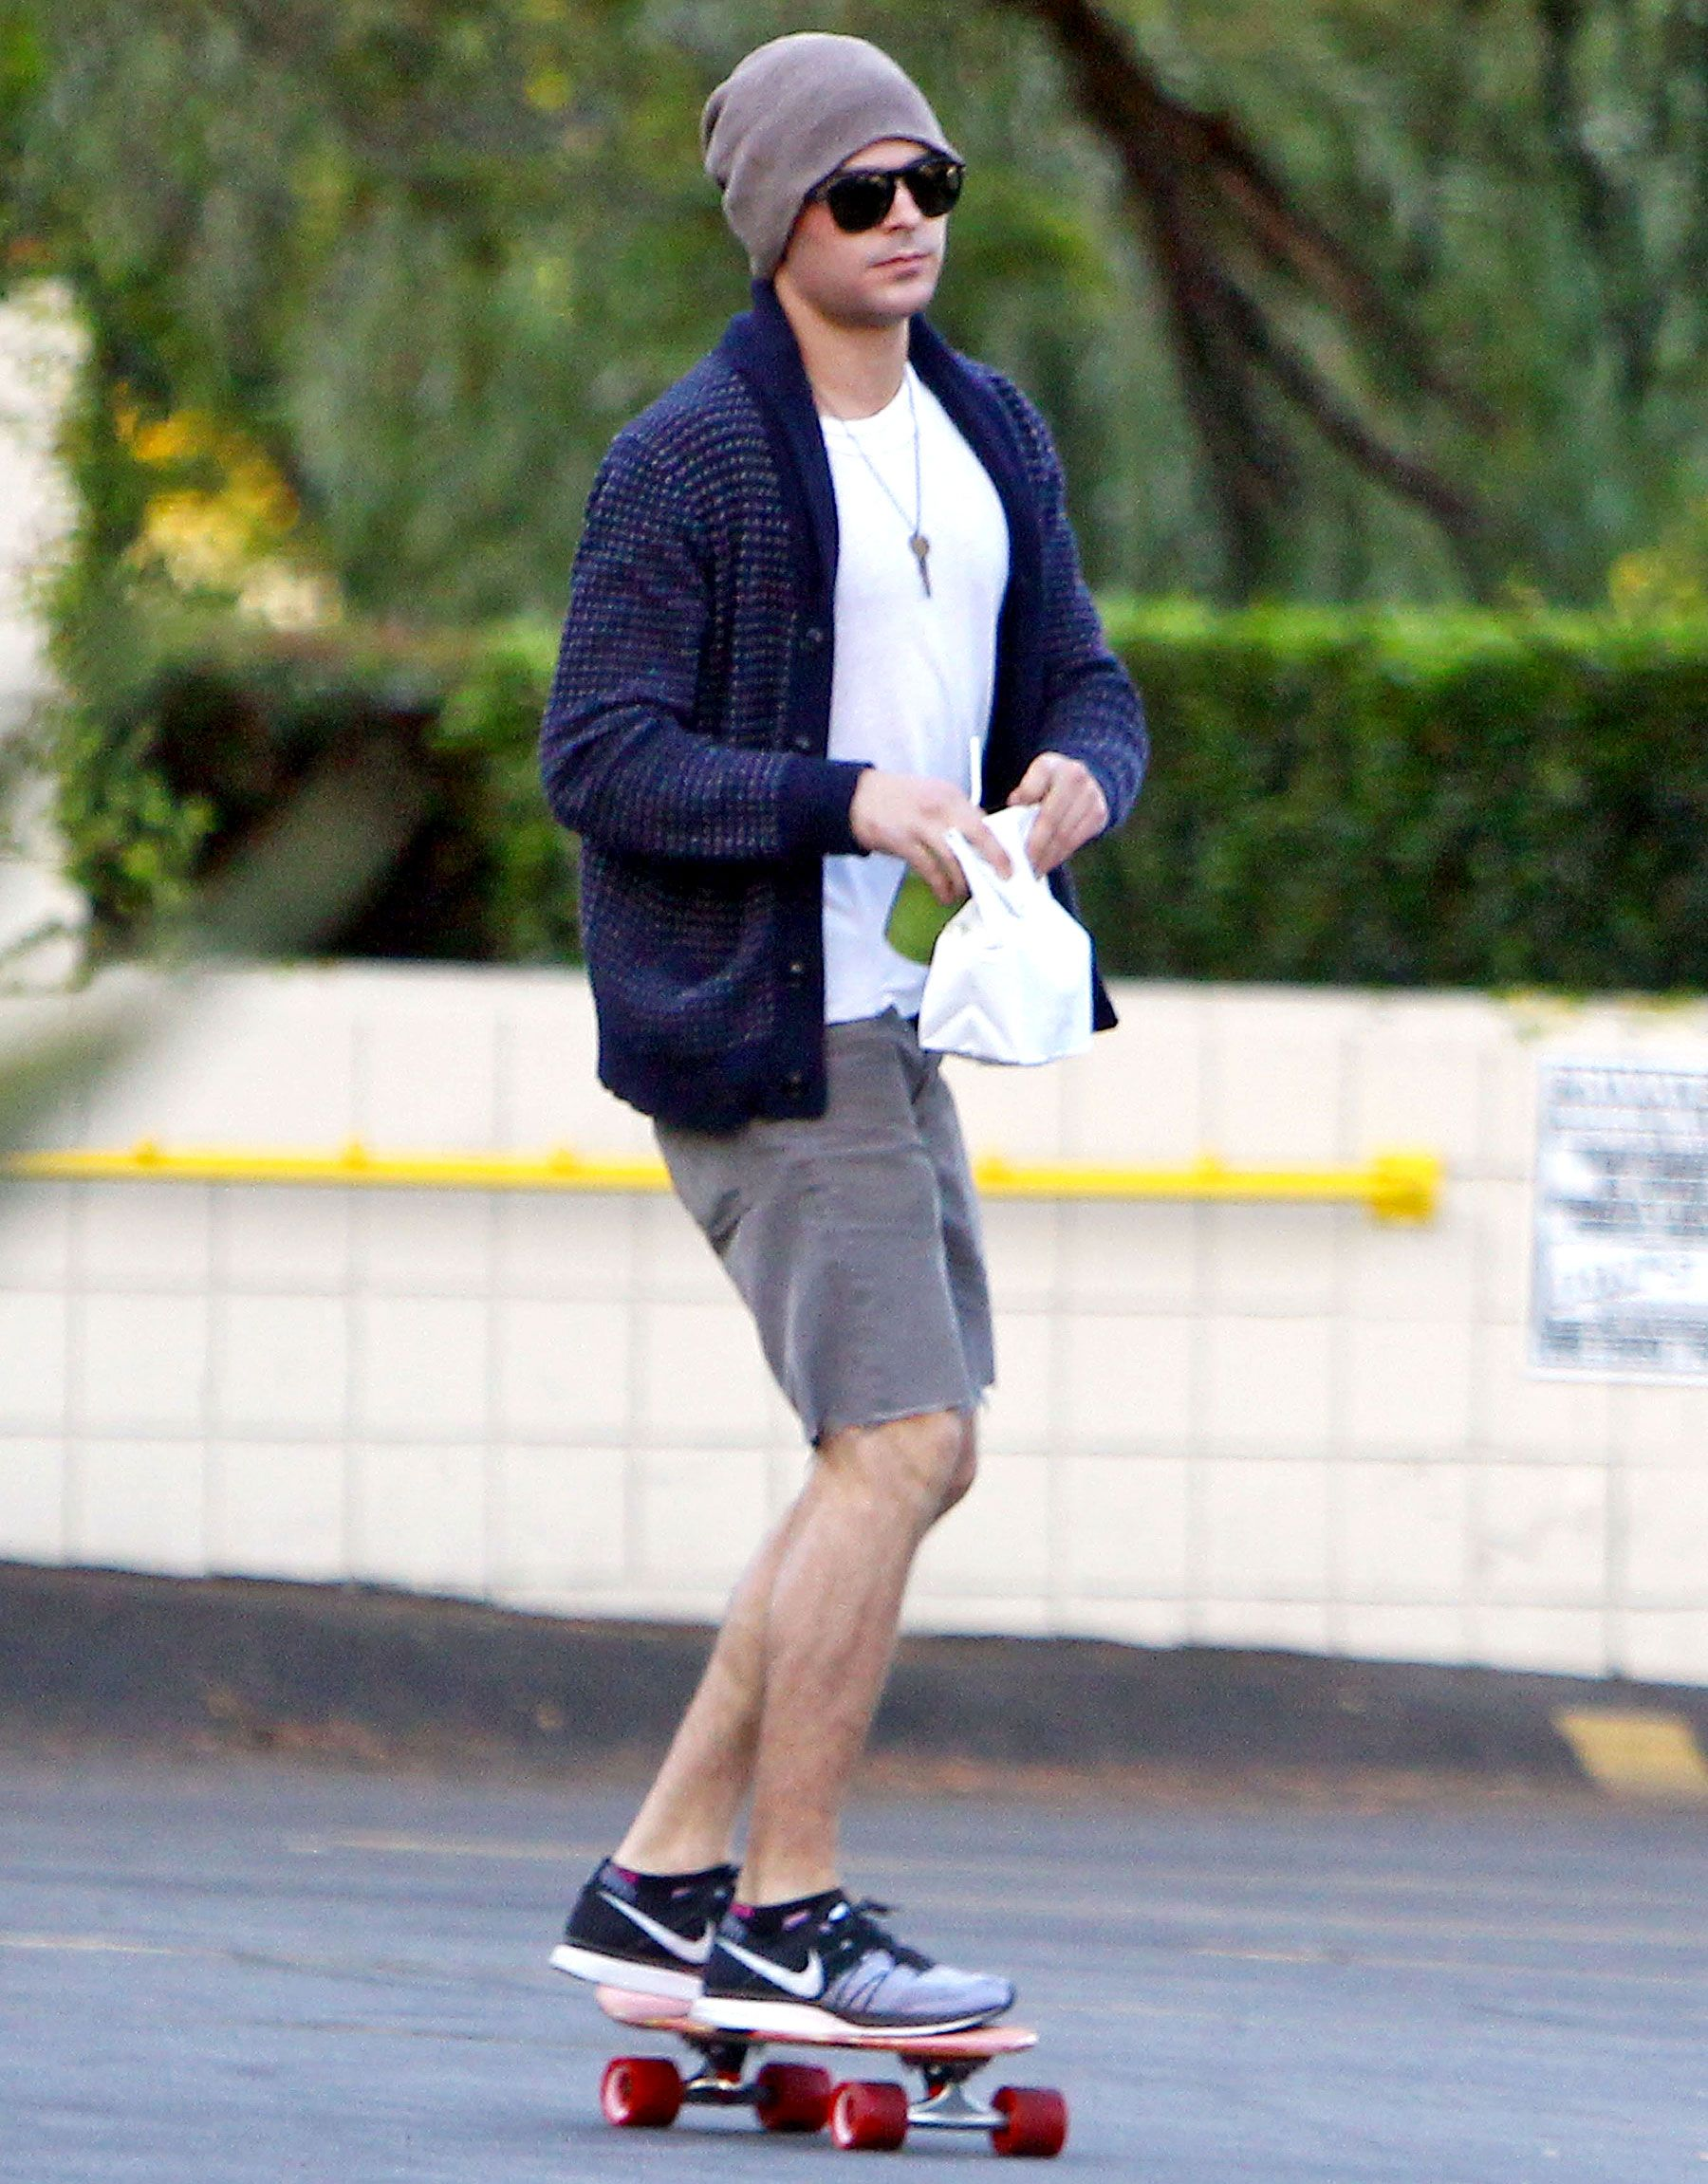 Zac efron goes skateboarding after breaking jaw first picture zac efron kristyandbryce Images